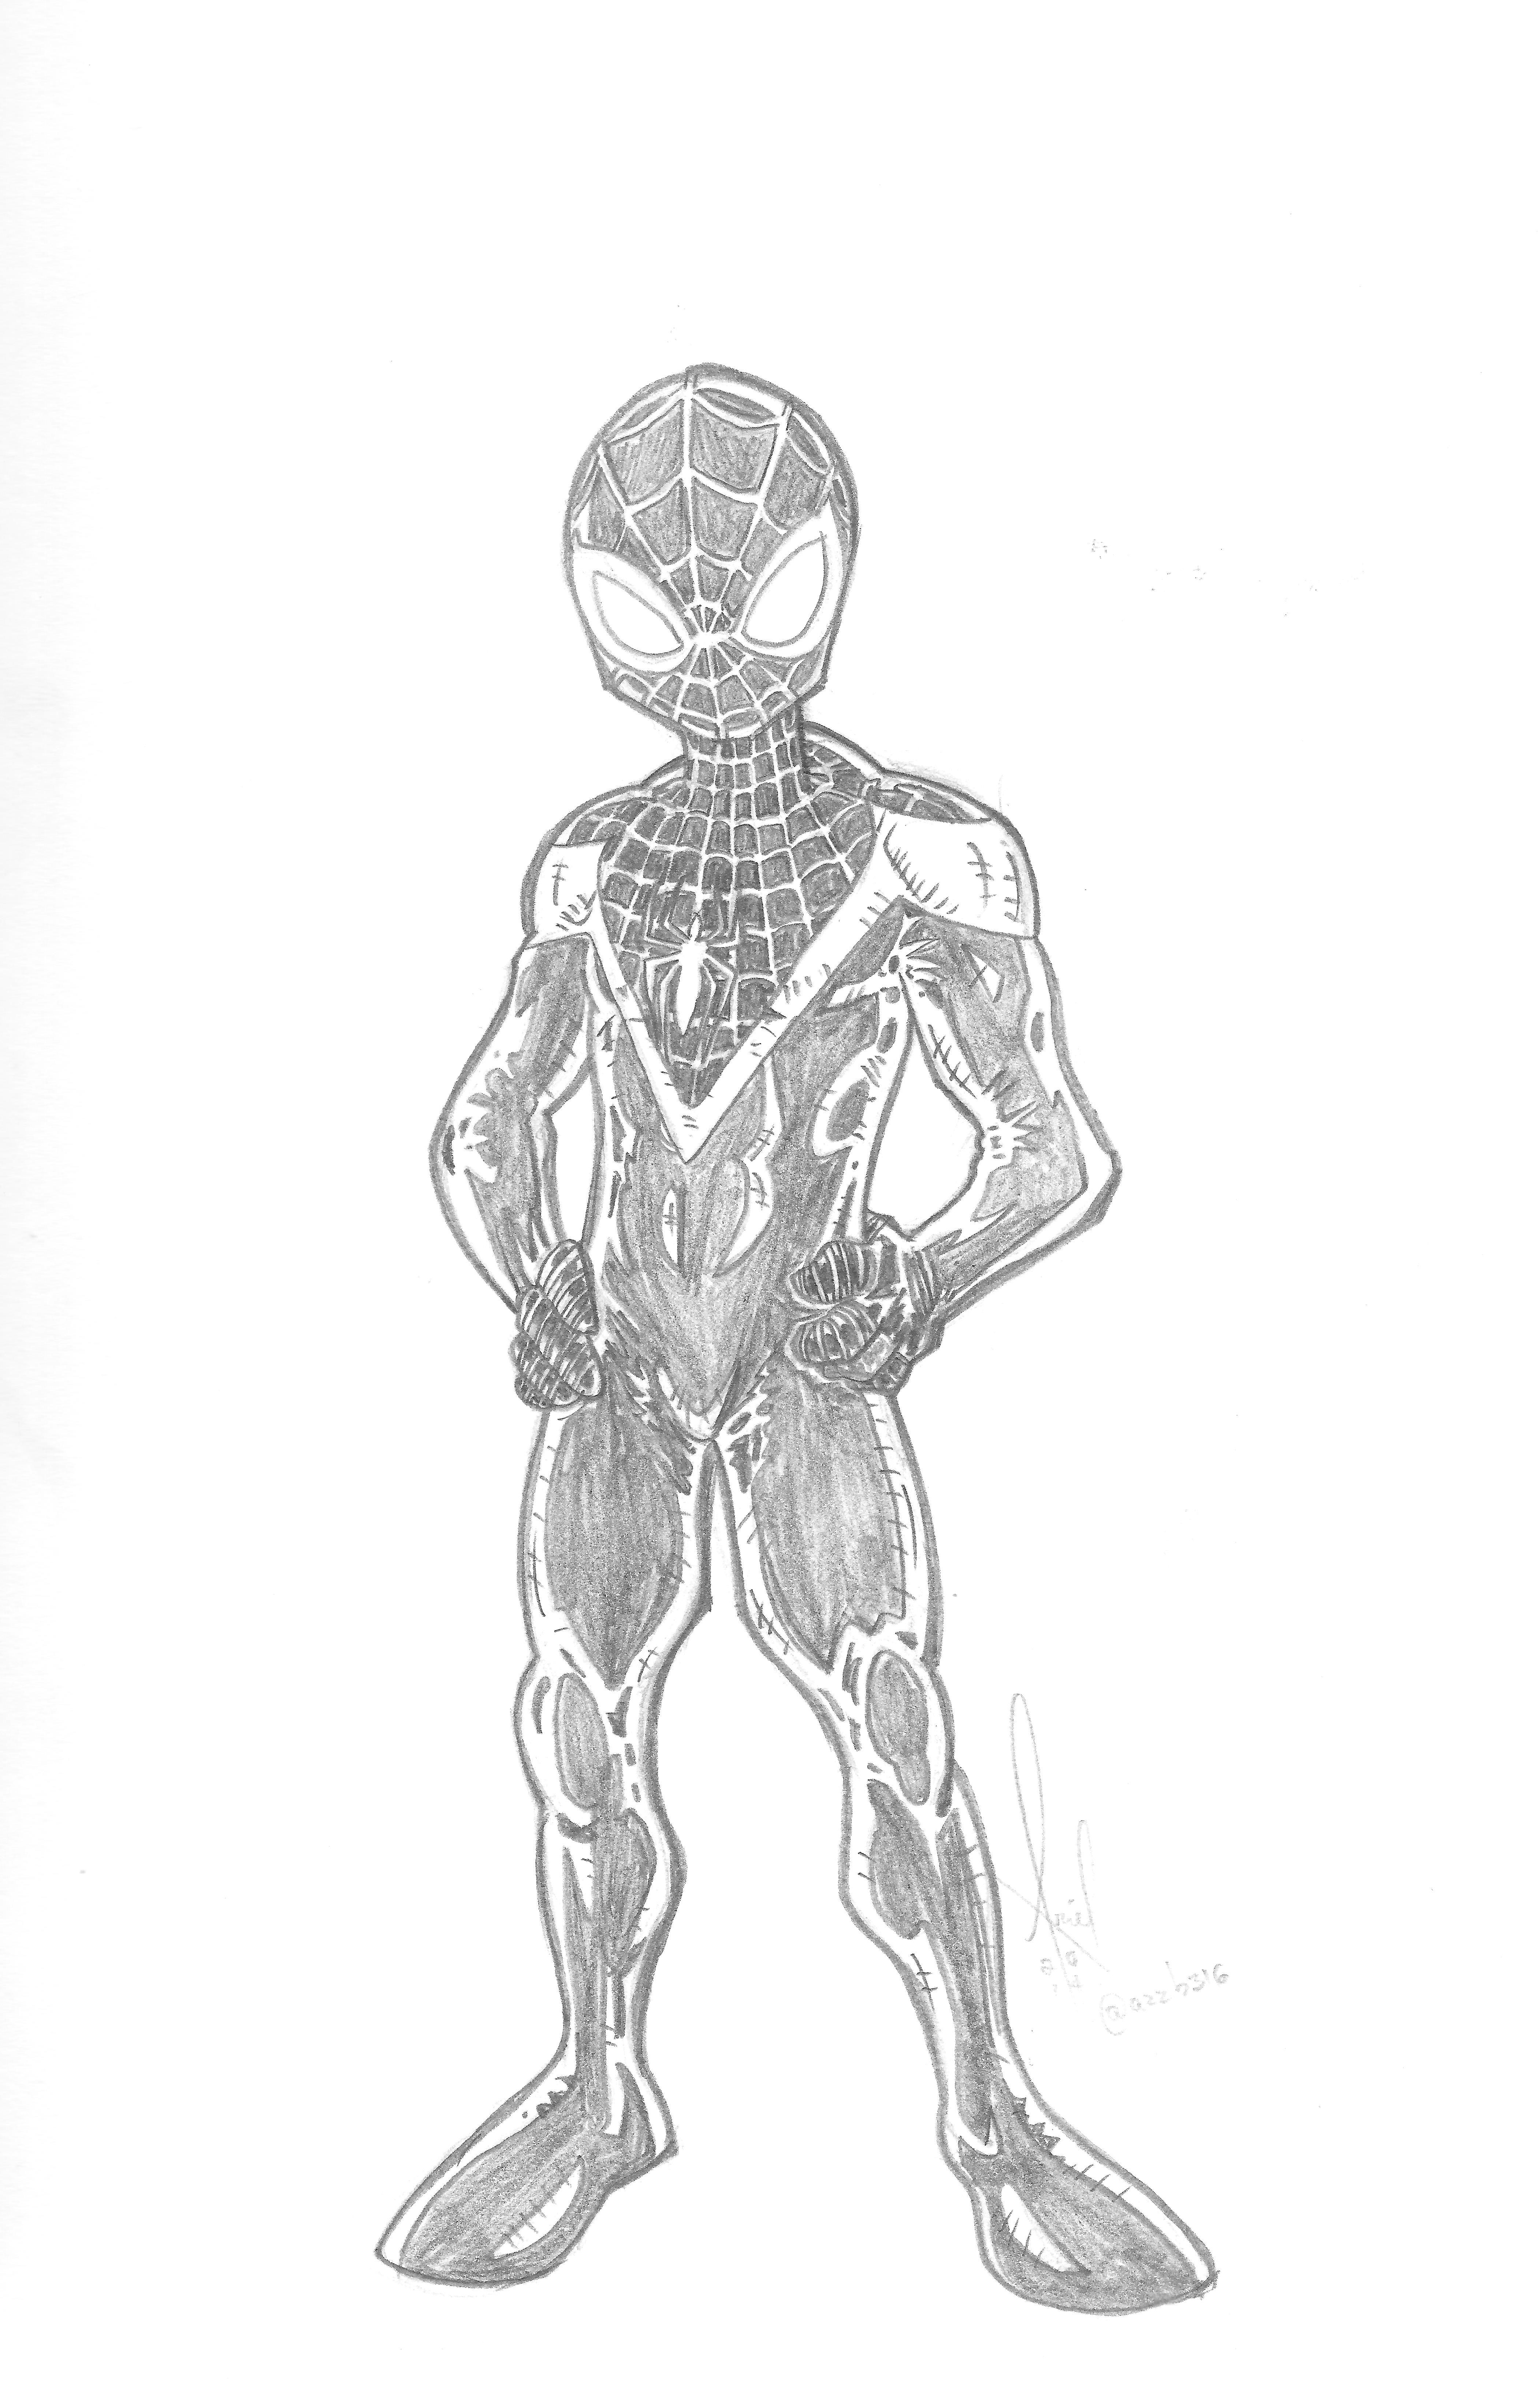 miles morales spiderman coloring page avengers miles morales spiderman coloring pages for kids page morales coloring miles spiderman